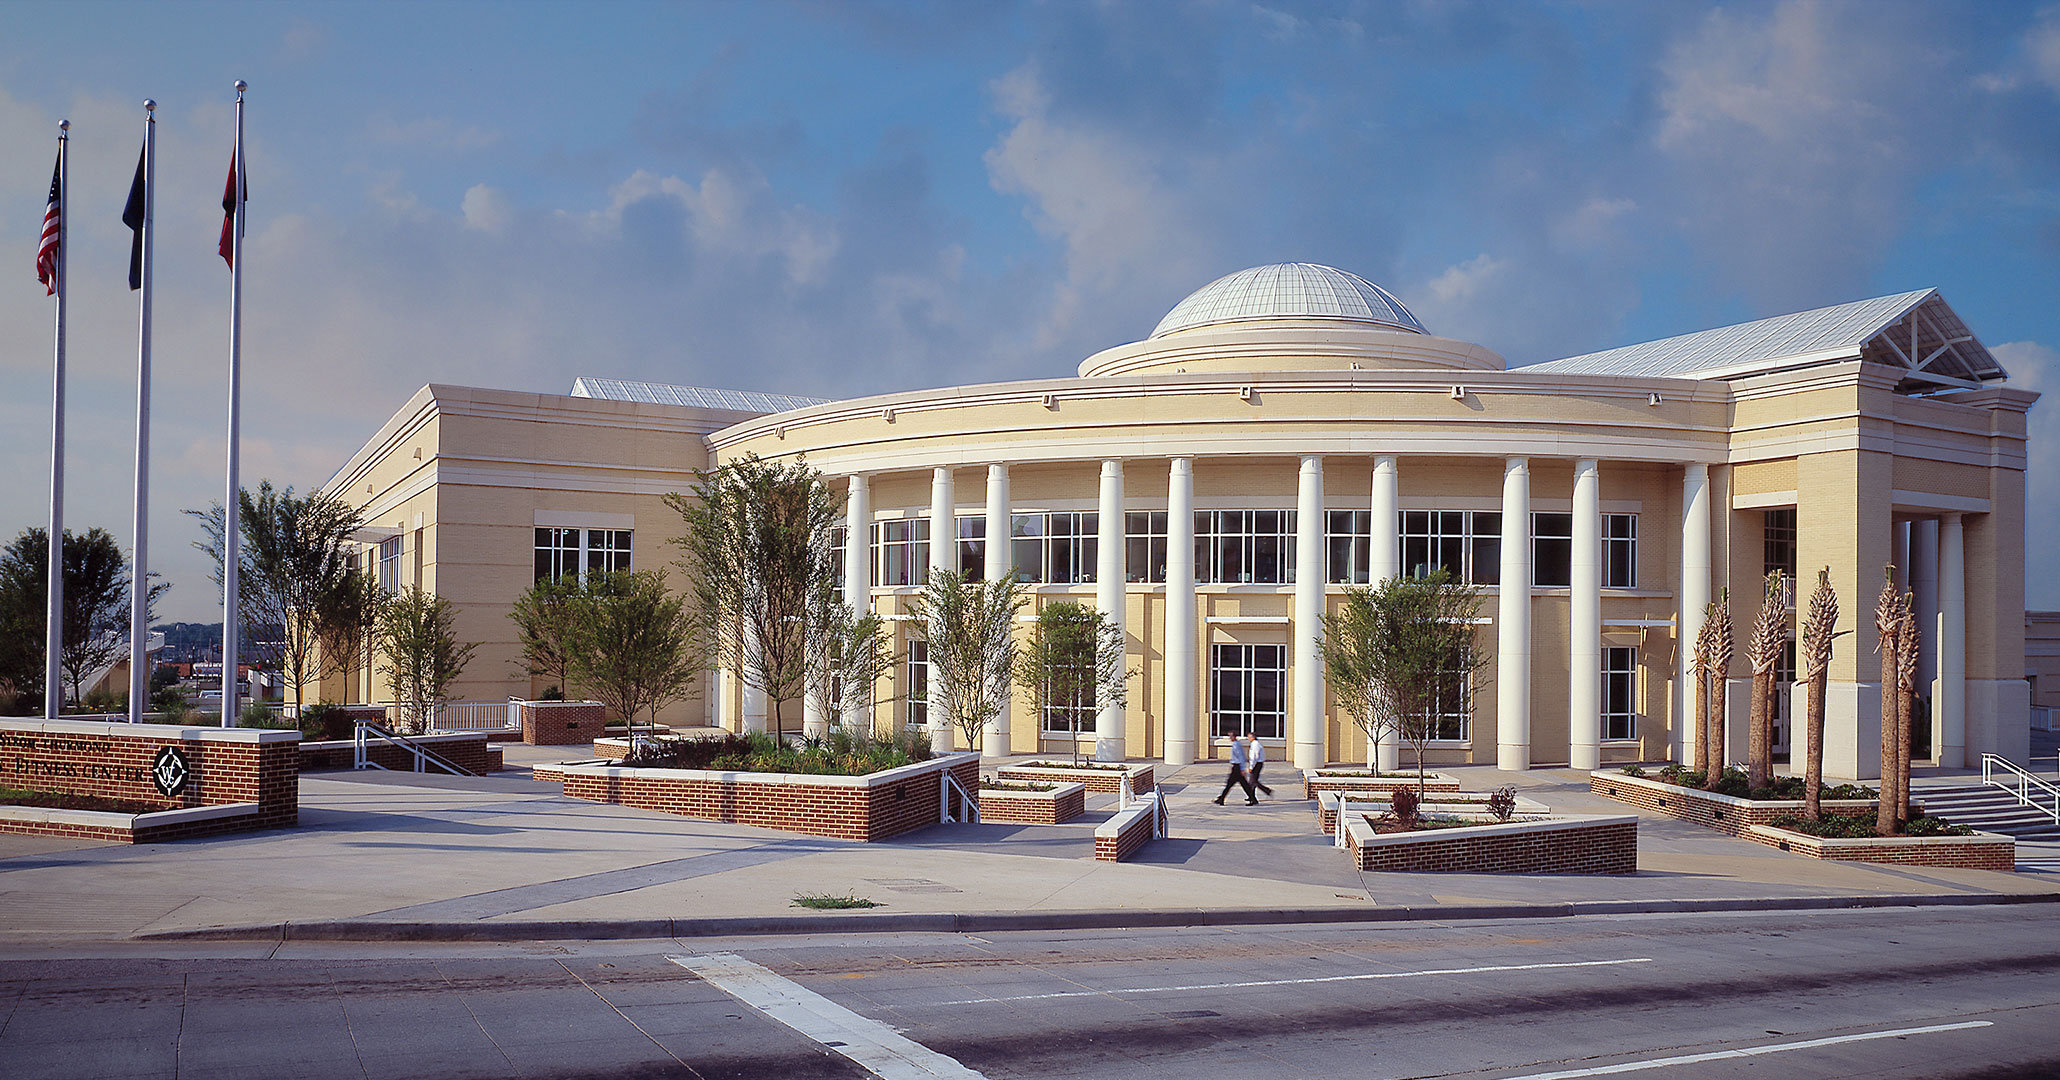 University of South Carolina worked with Boudreaux architects to build the Strom Thurmond Wellness Center in downtown Columbia, SC